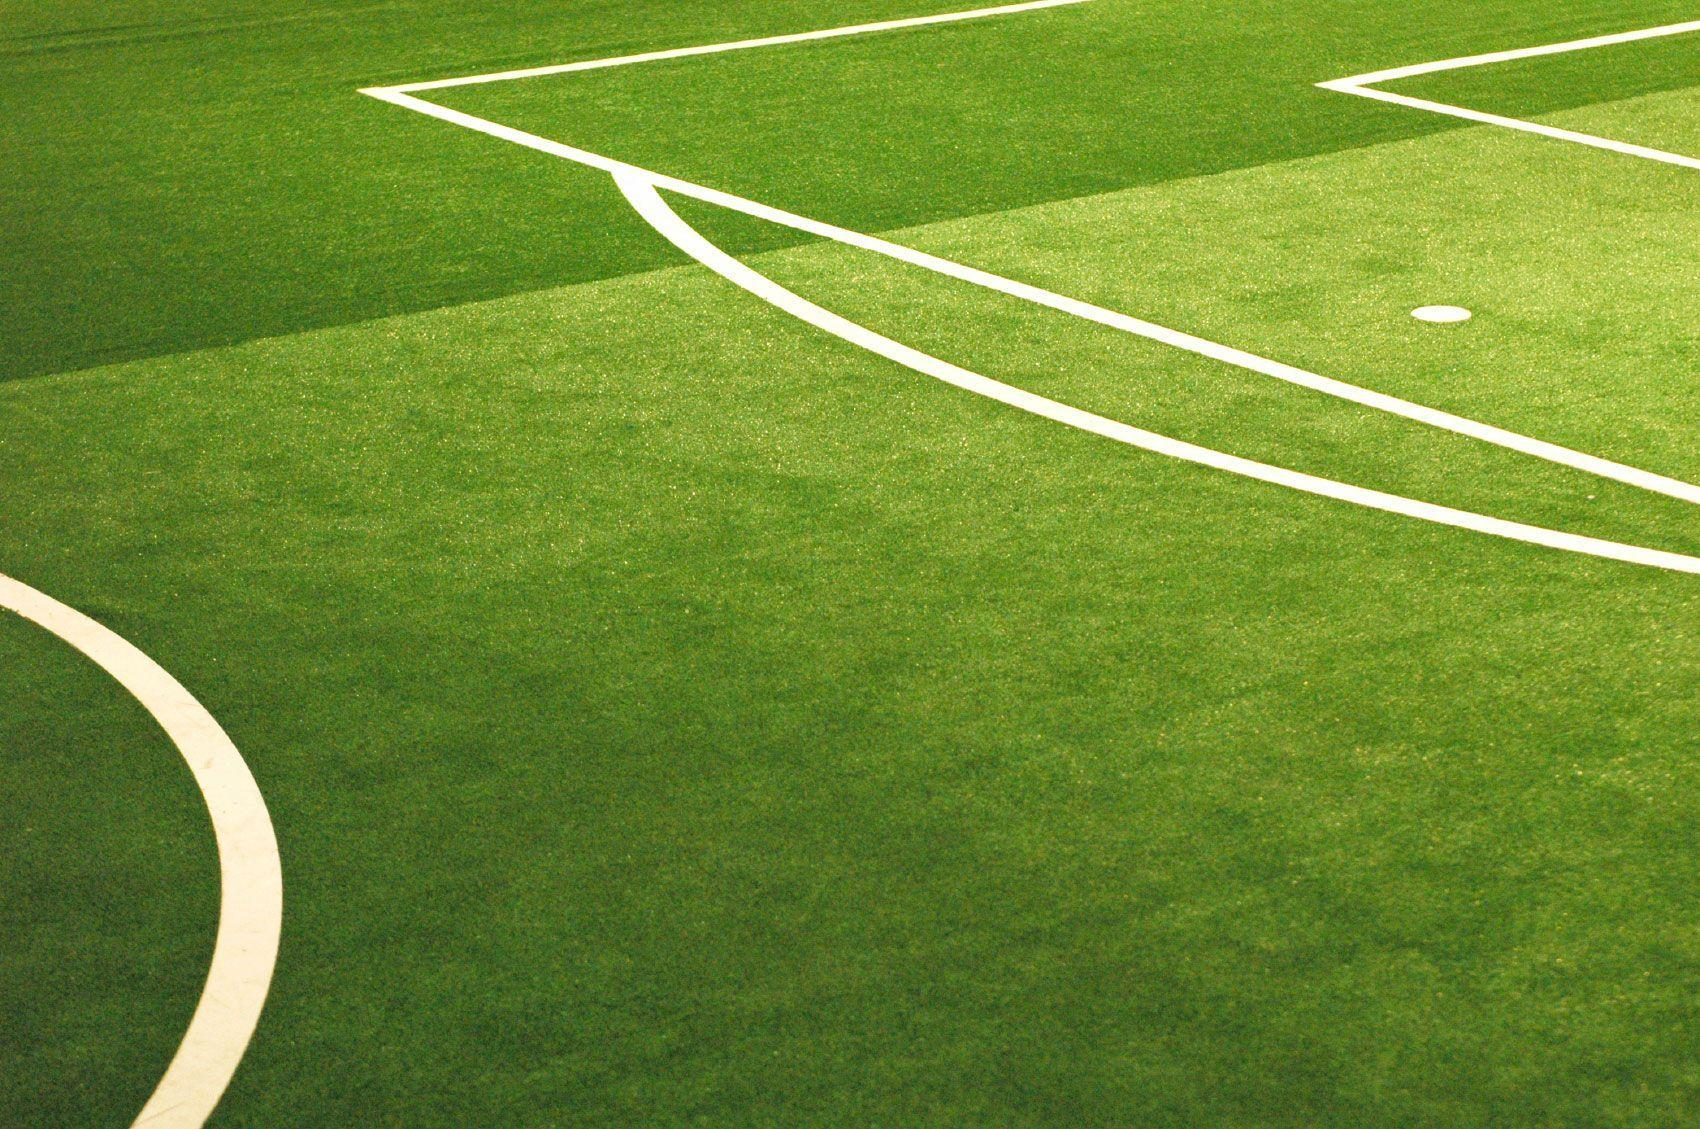 Free Soccer Wallpaper: Soccer Backgrounds